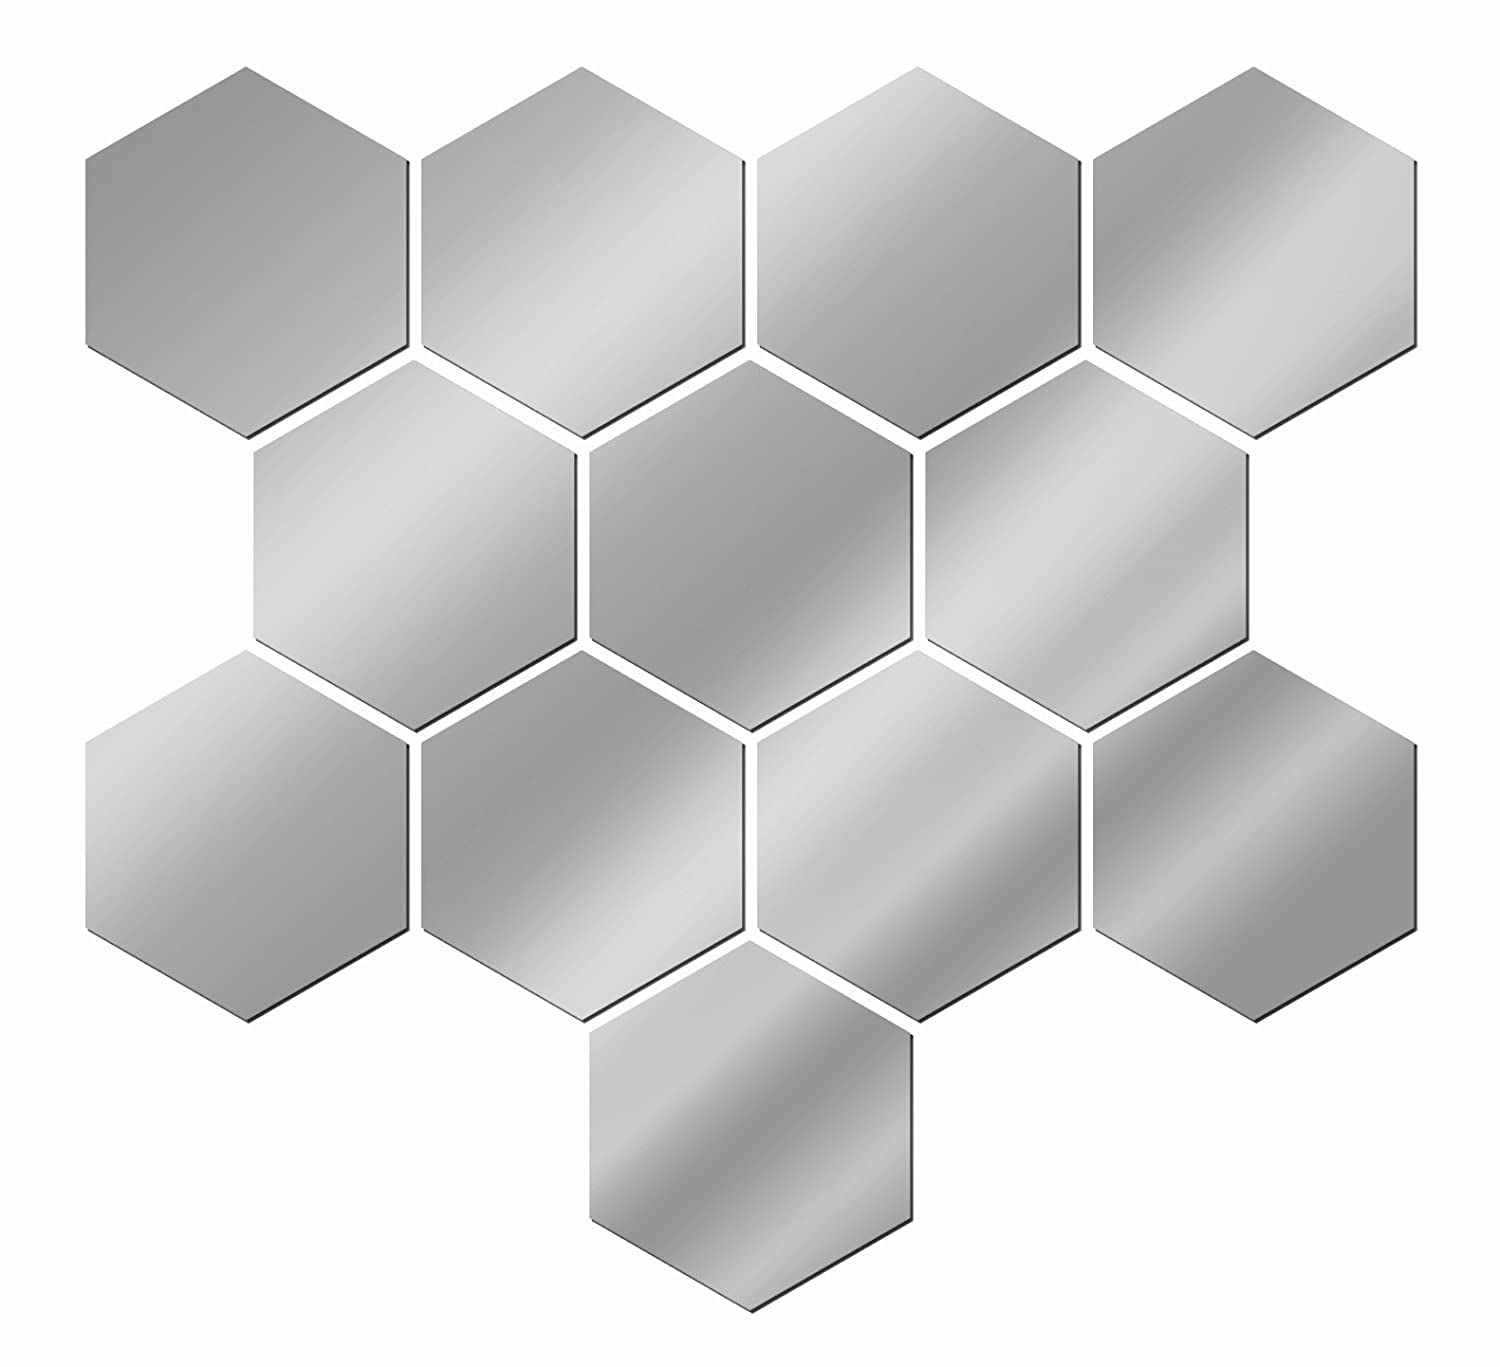 Justnile decorative hexagonal wall stickers 12pc silver for Small silver mirror